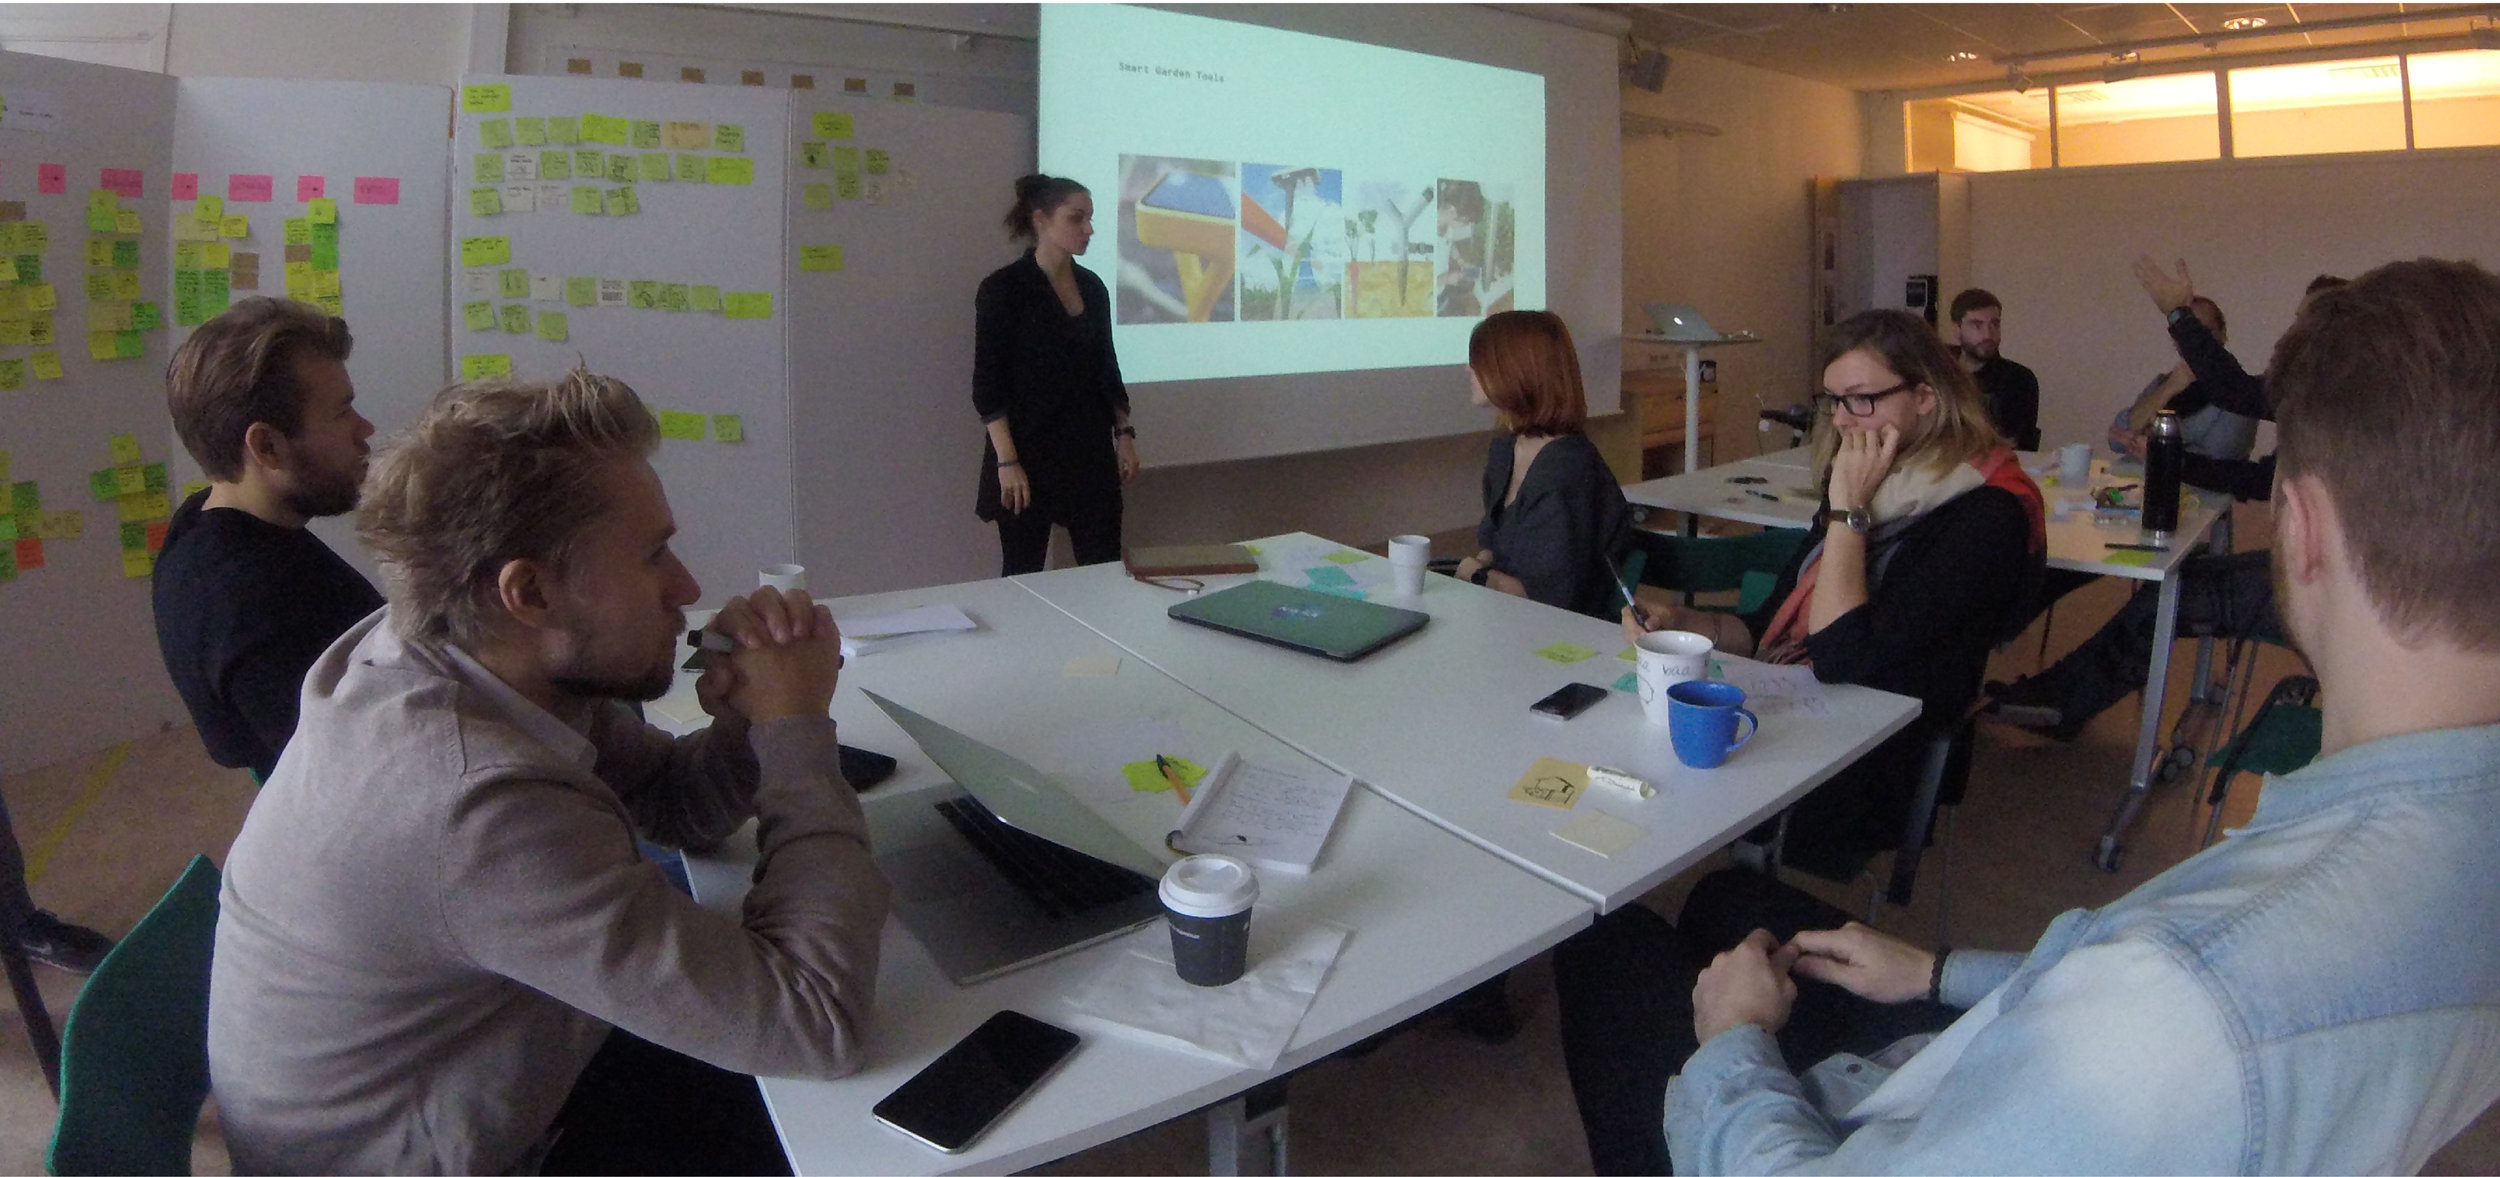 Presentation and brainstorming session with Advanced Product Design students